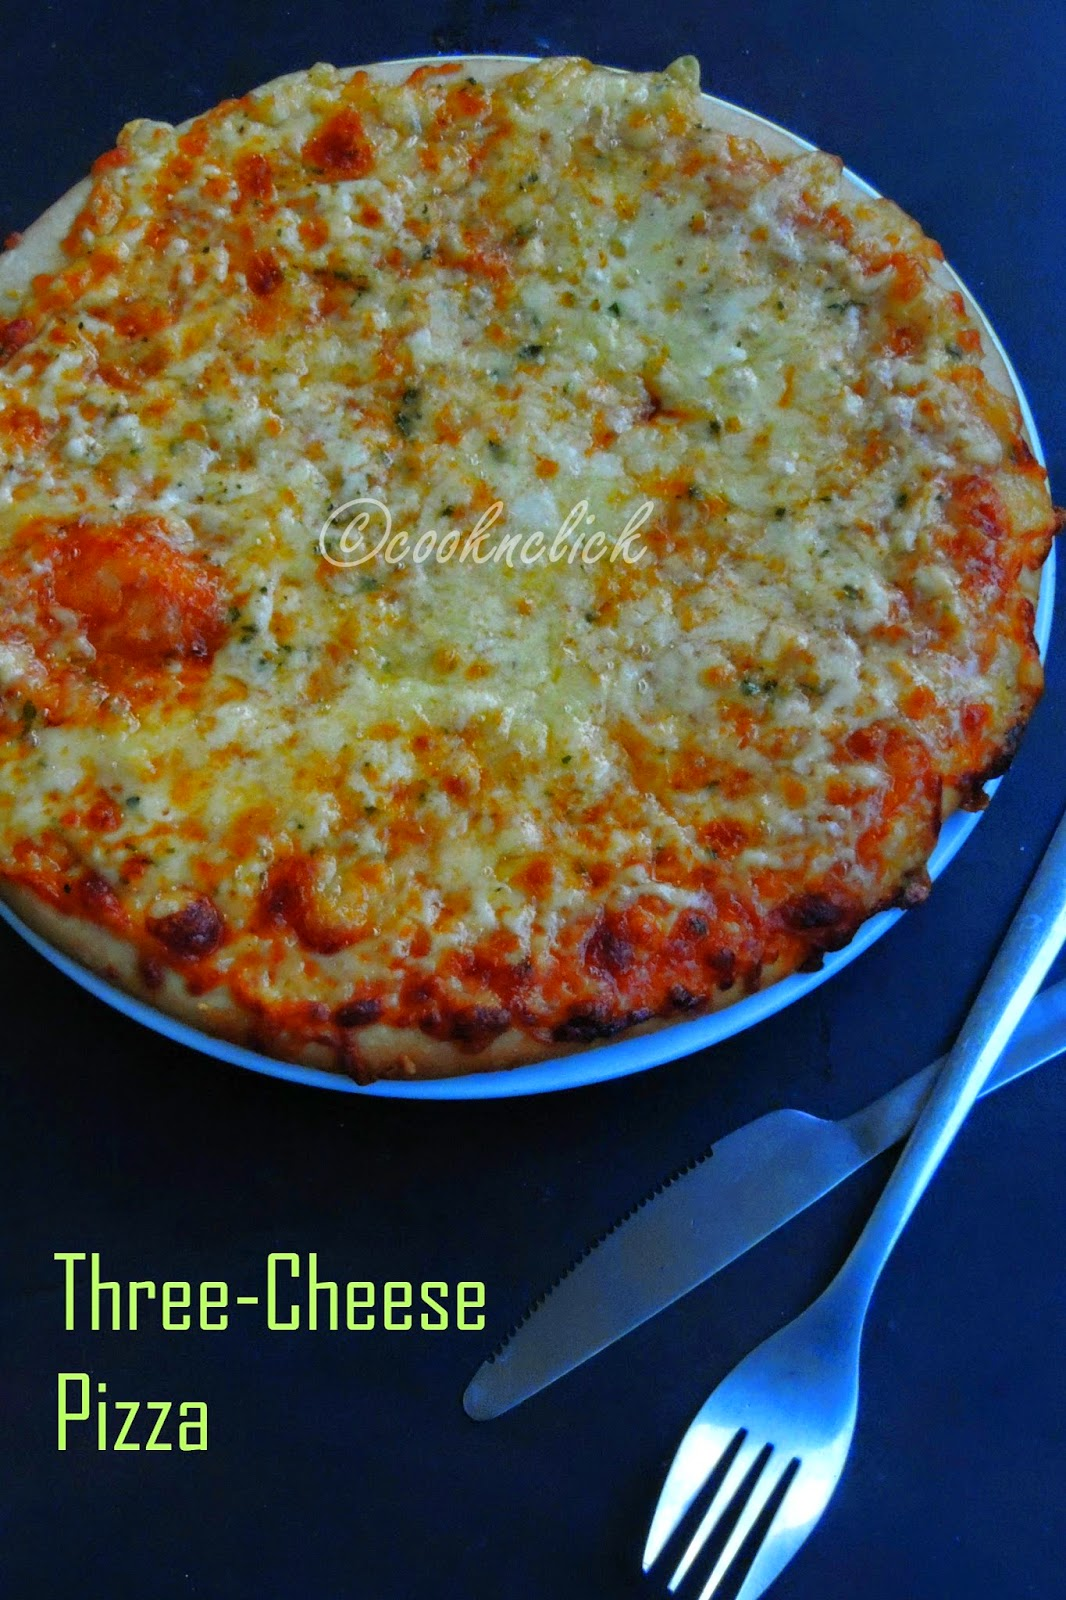 Triple cheese pizza